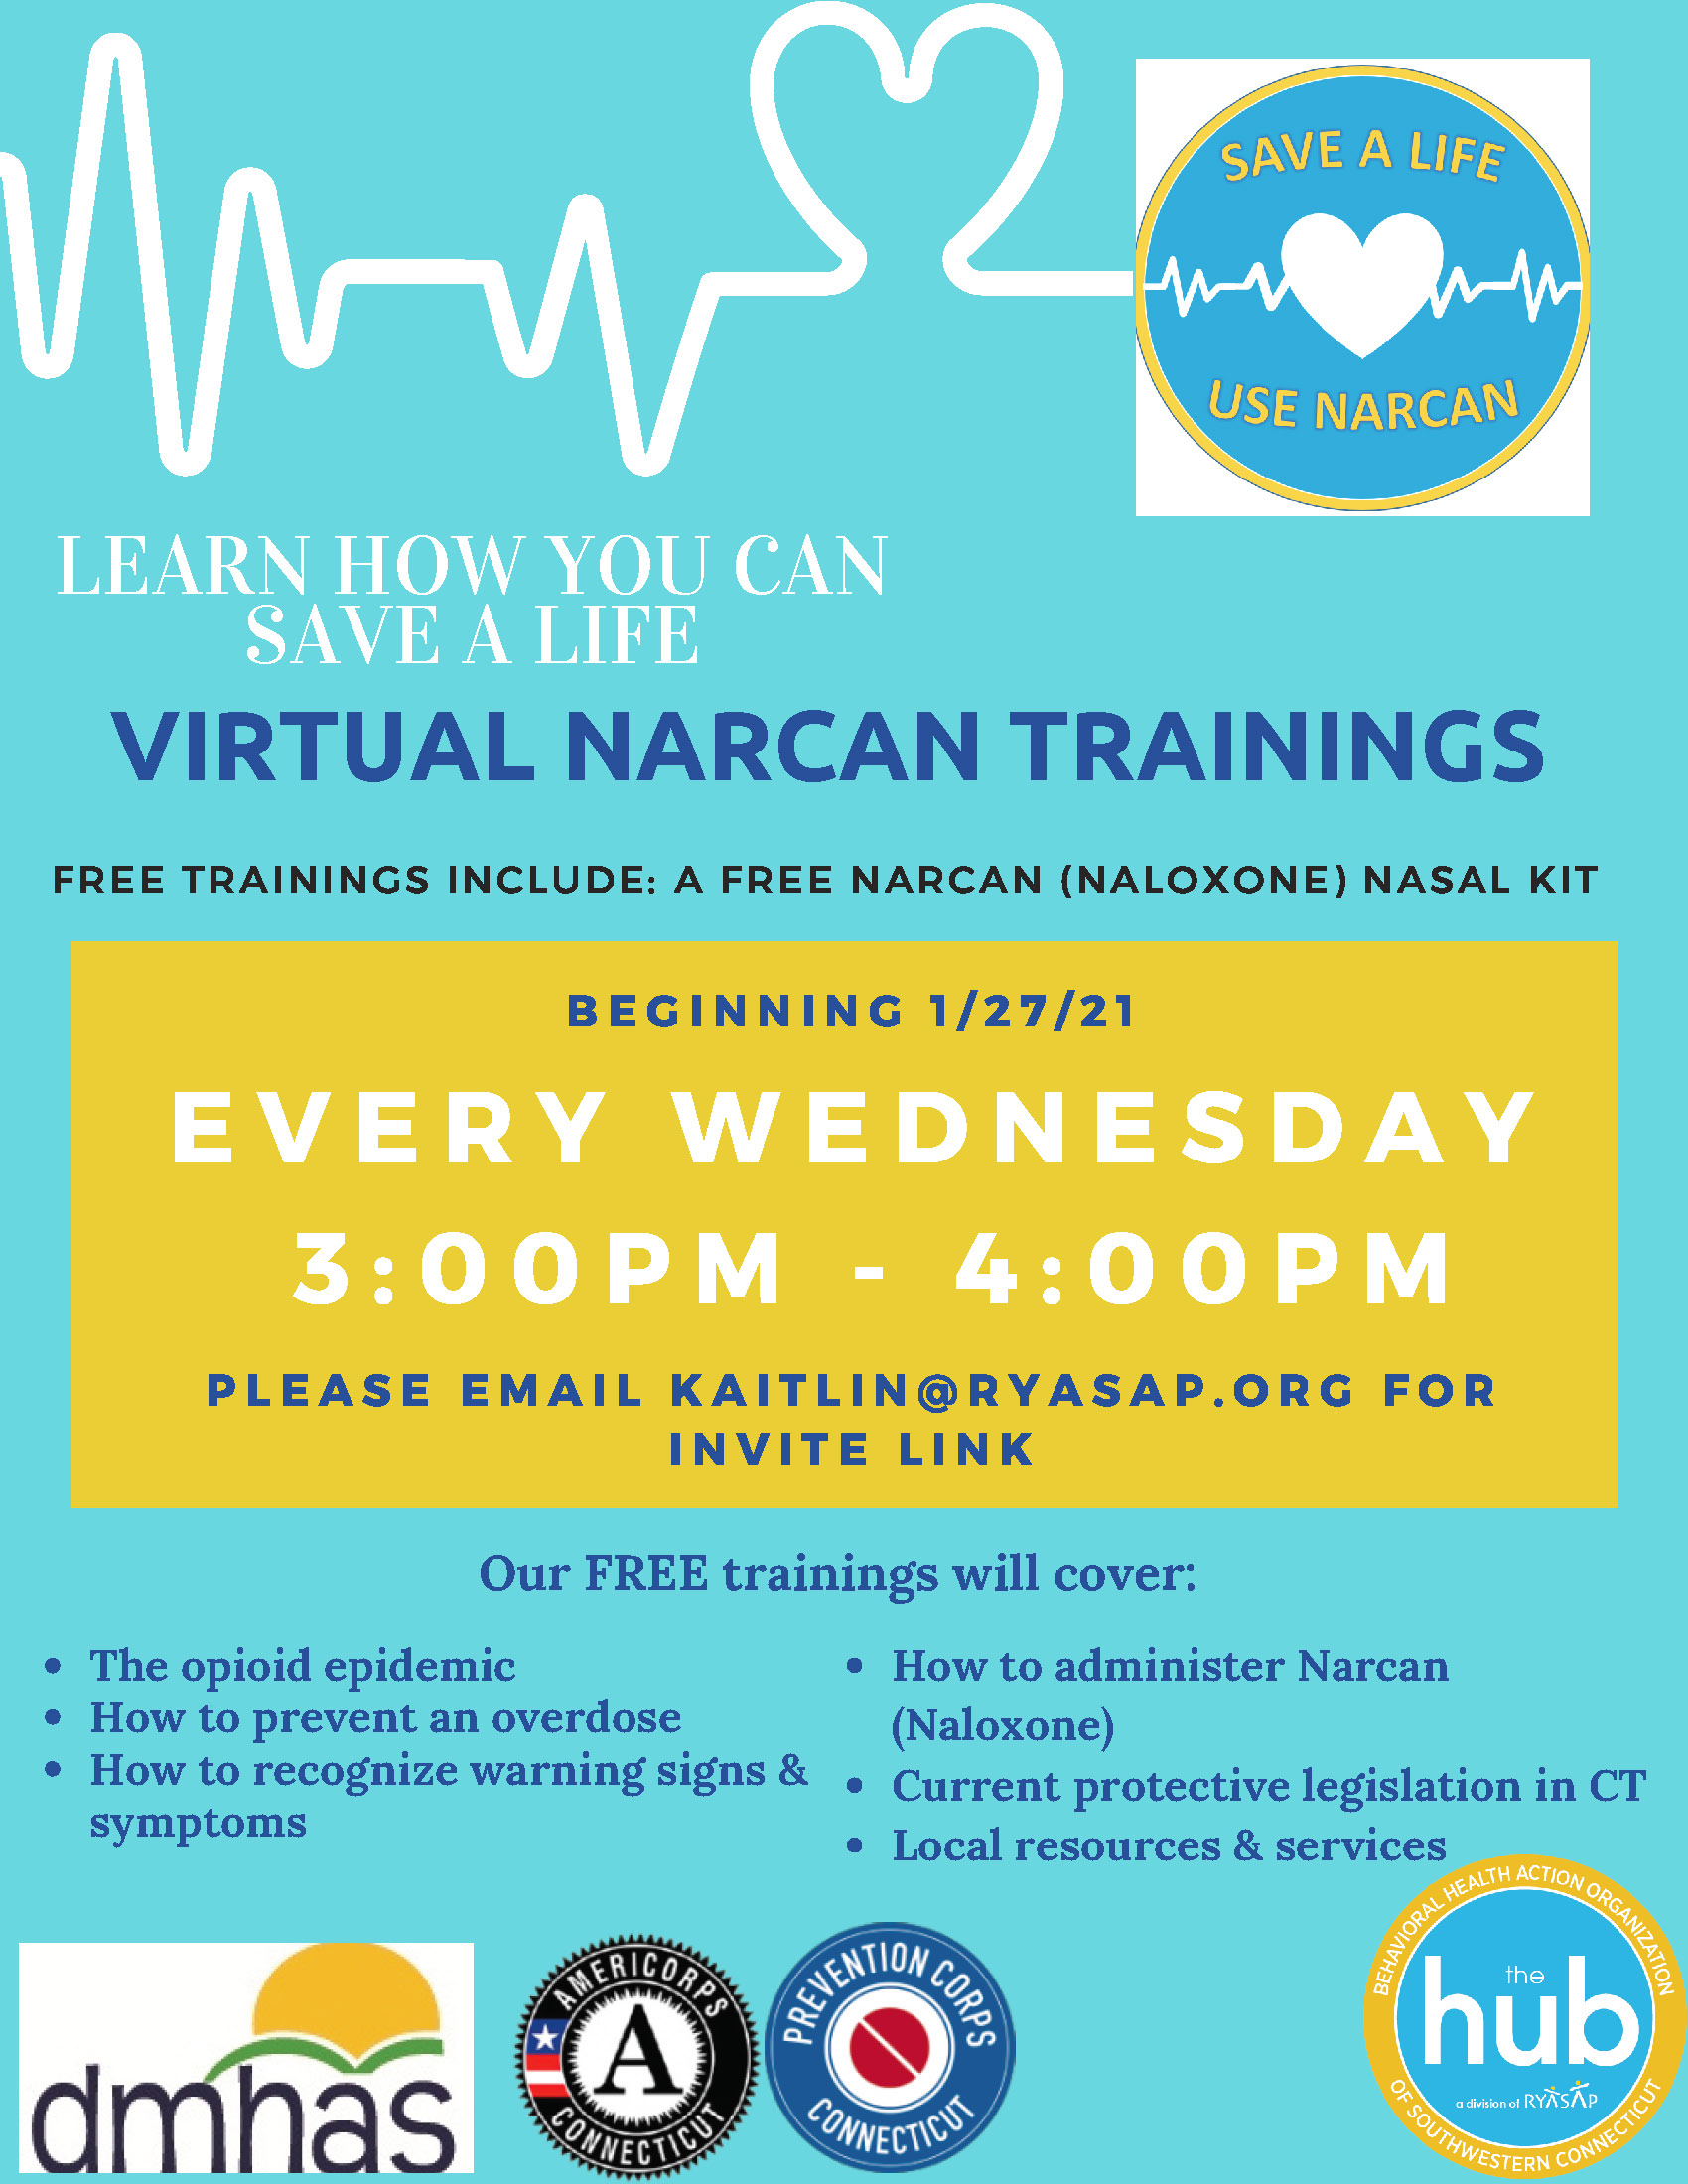 Every Wednesday from 3-4pm These FREE trainings will cover: -The opioid epidemic -How to prevent an overdose -How to recognize warning signs & symptoms -How to administer Narcan (Naloxone) -Current protective legislation in CT -Local resources & services Please email Kaitlin@ryasap.org for invite link!